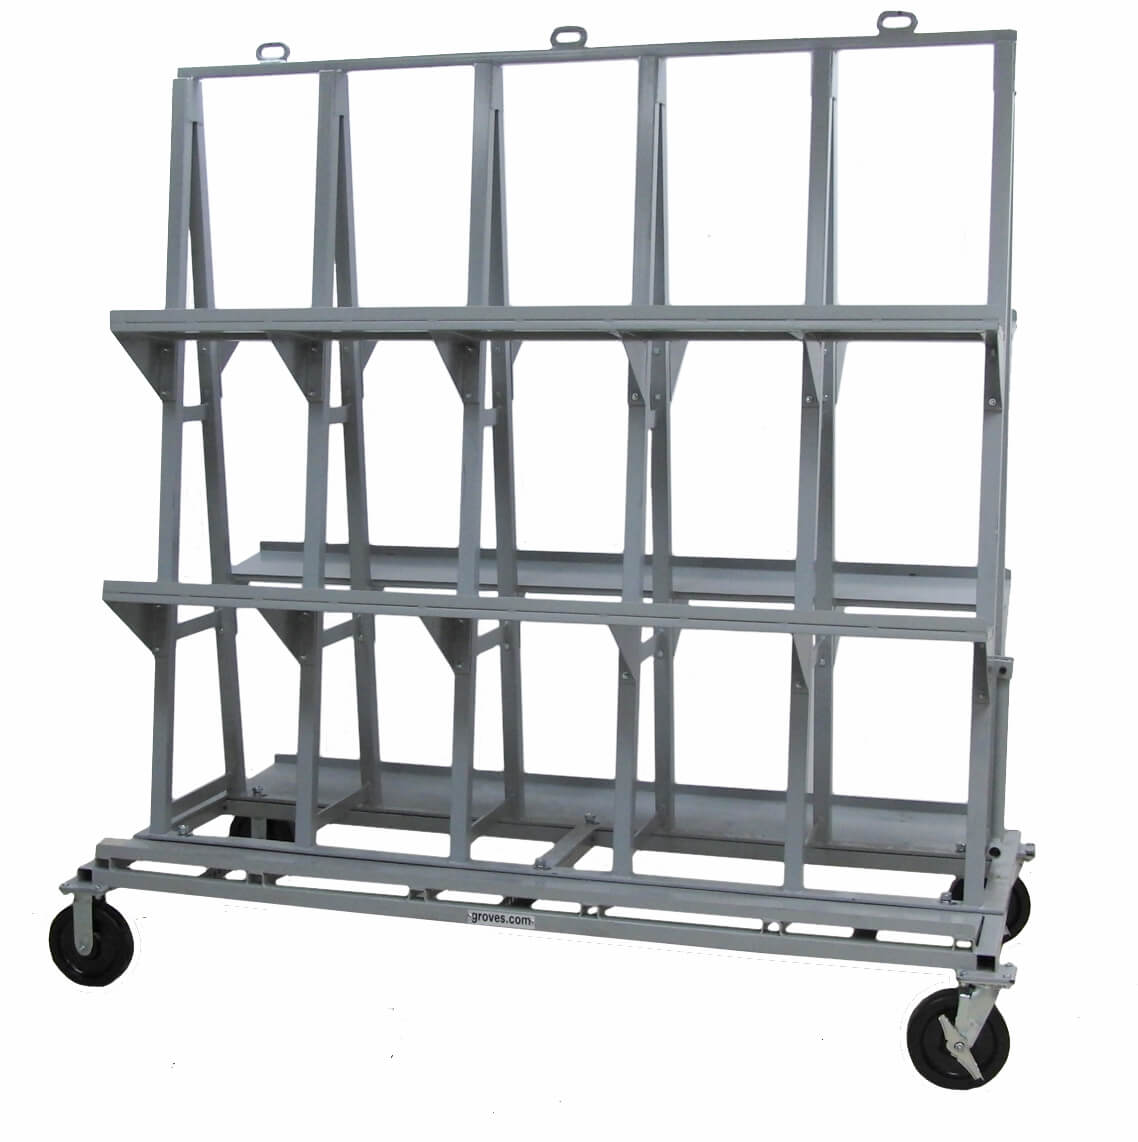 Heavy Duty Backsplash Cart – HDBSC8472